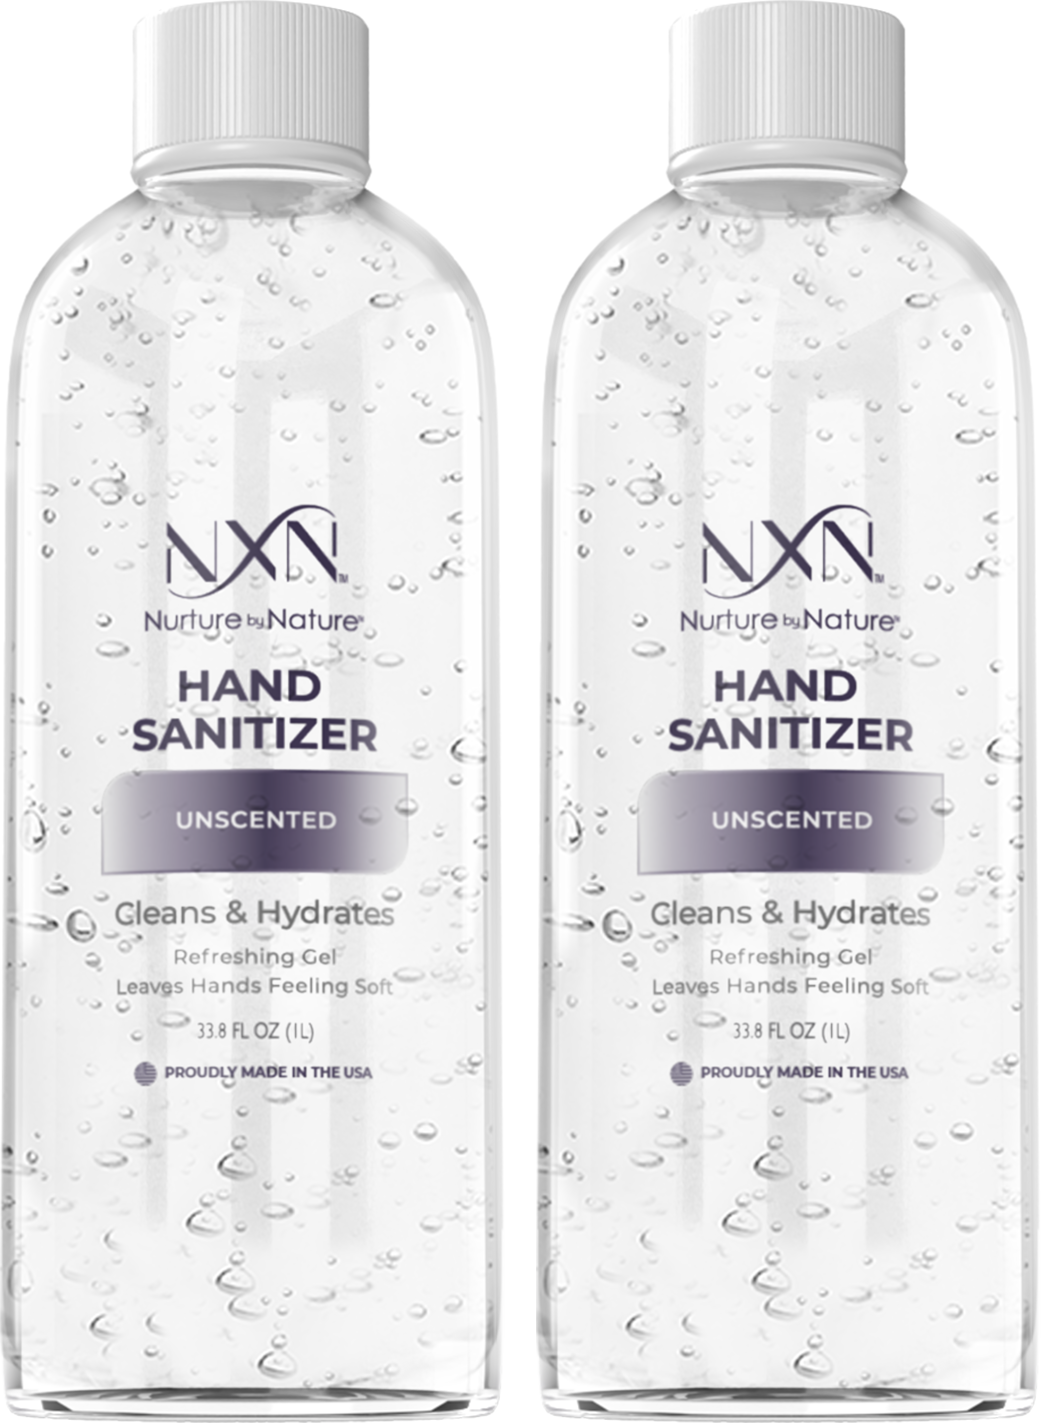 NxN Advanced Hand Sanitizer Re-fill. Unscented, 2 Pack